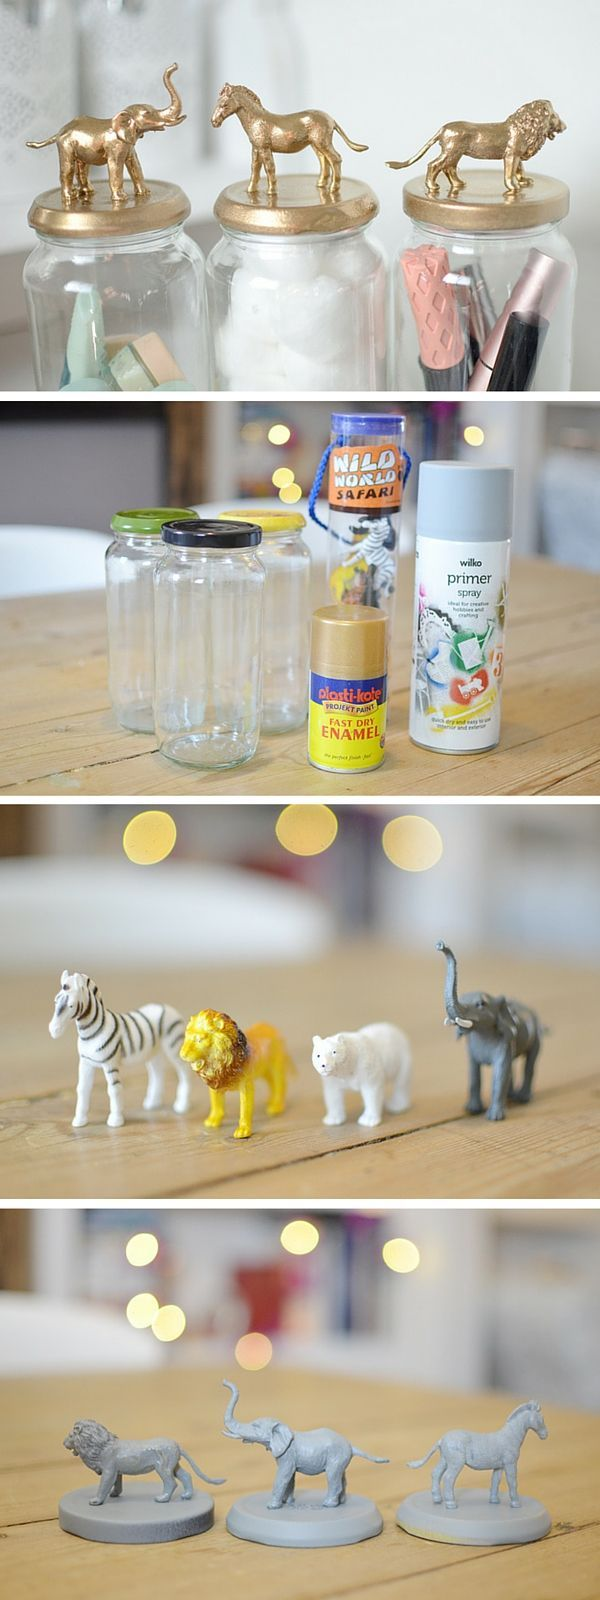 Diy home table decorations - 10 Brilliant Diy Home Decor Ideas To Makeover Your Home